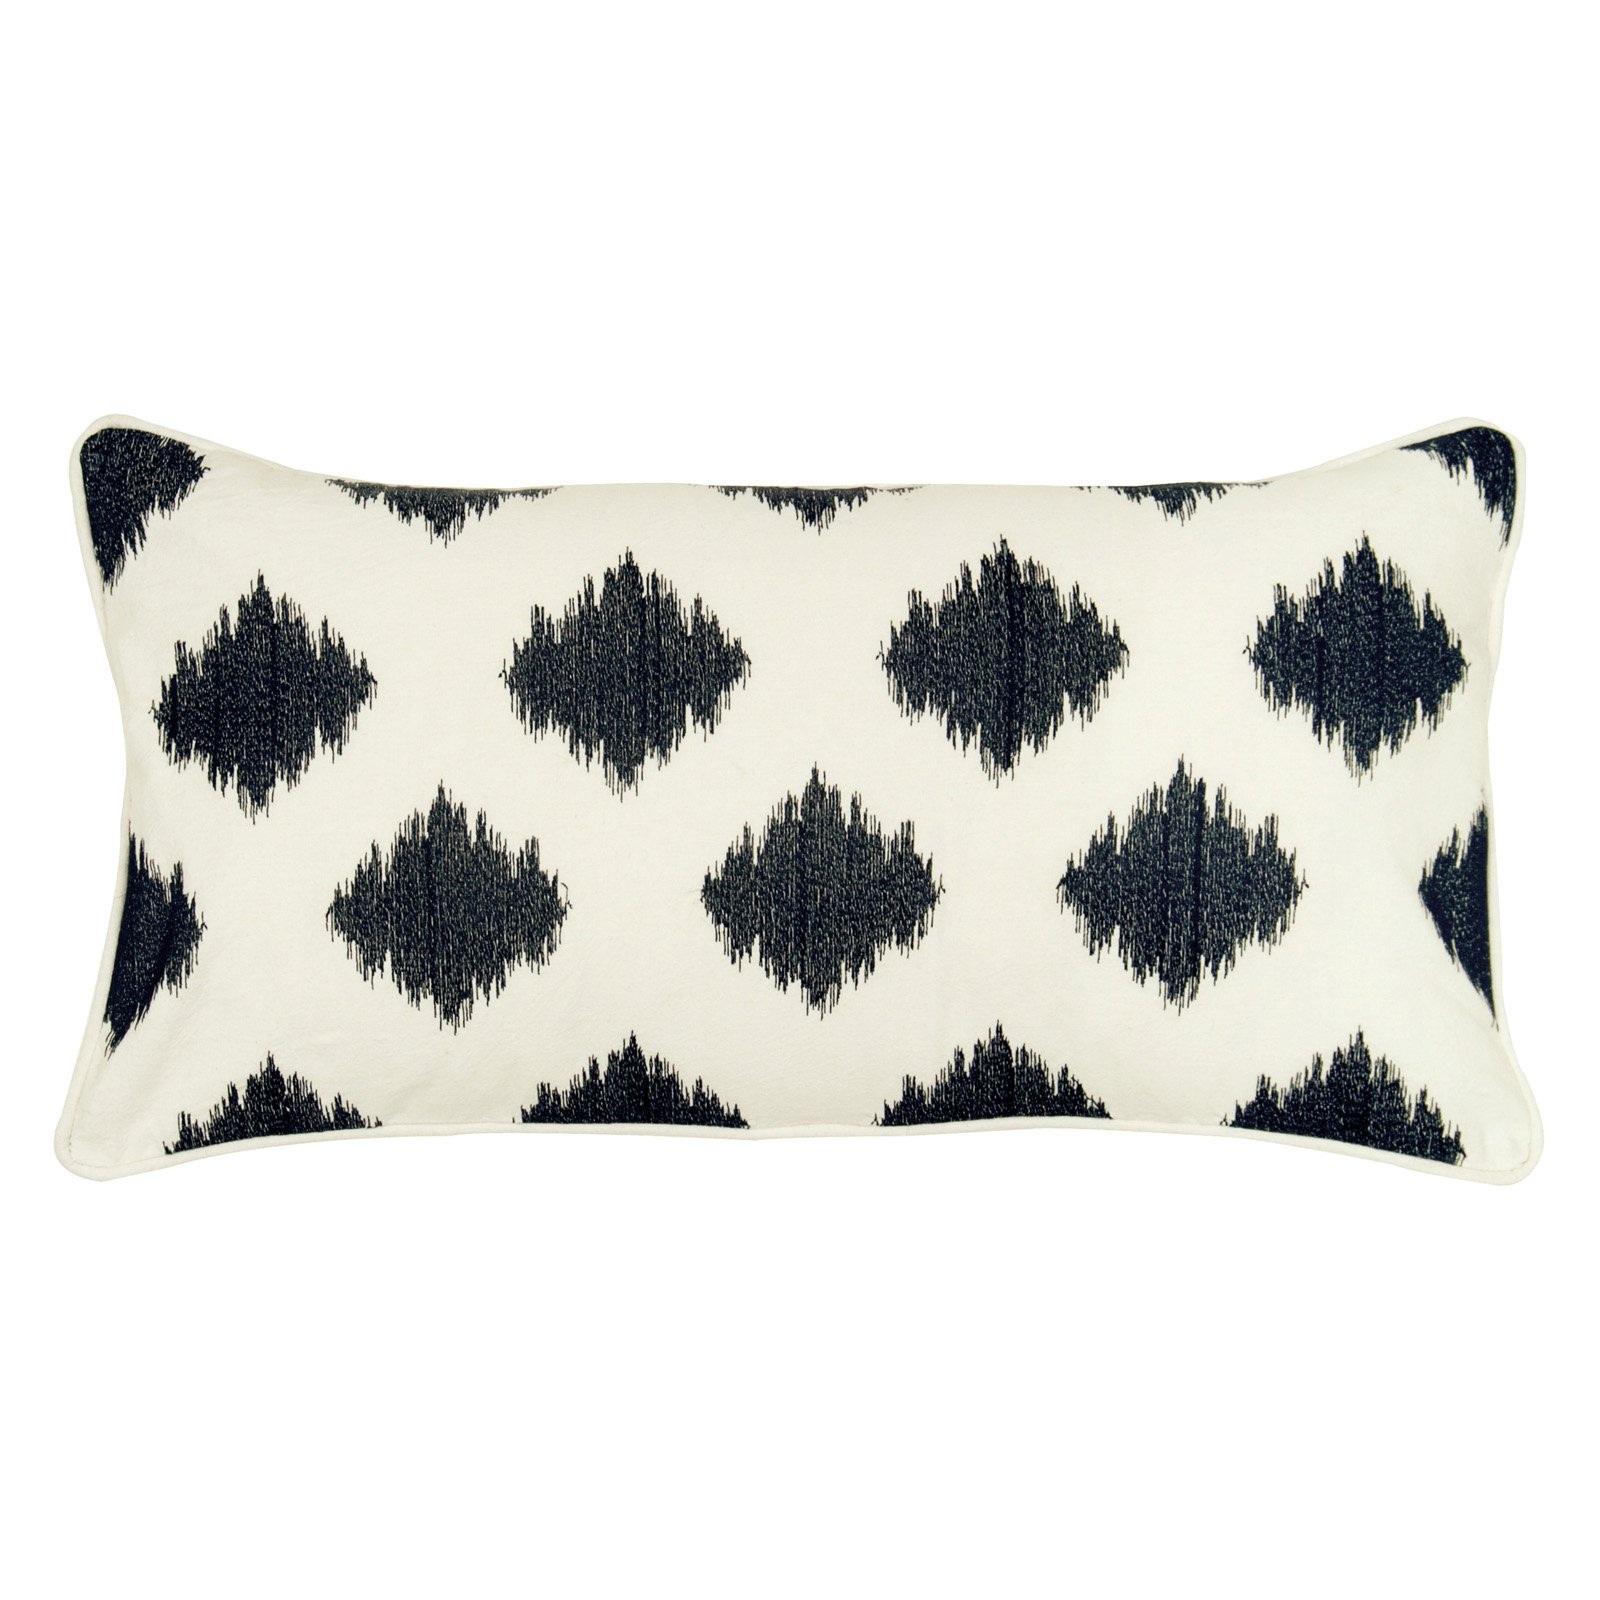 """Rizzy Home fractured ogee embroidered11"""" x 21""""Cotton decorative filled pillow"""